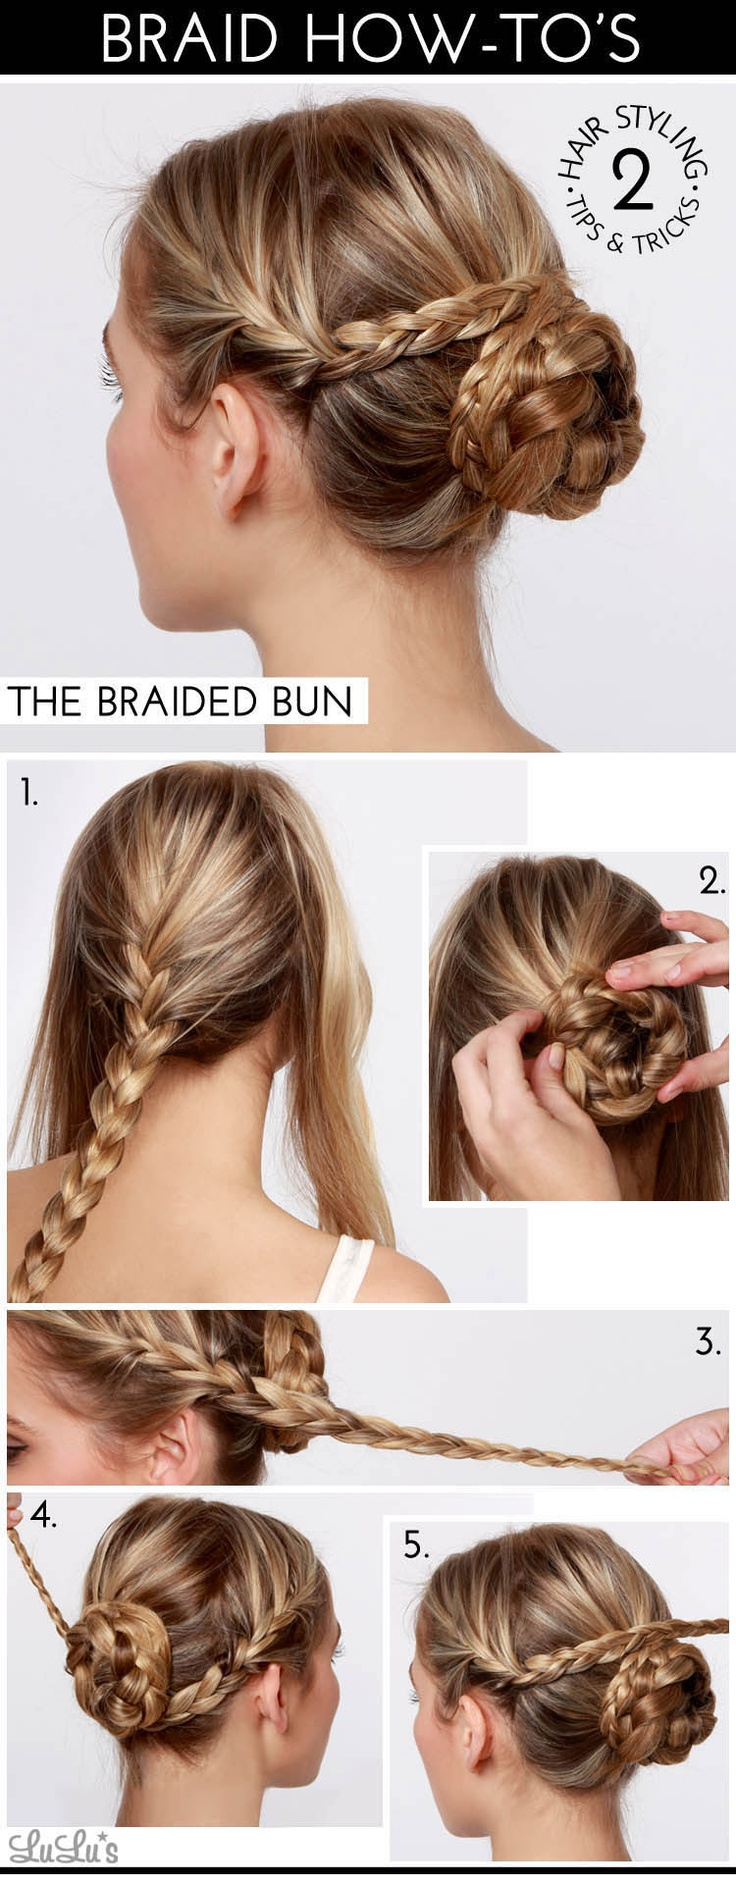 Asian hairstyle tutorials